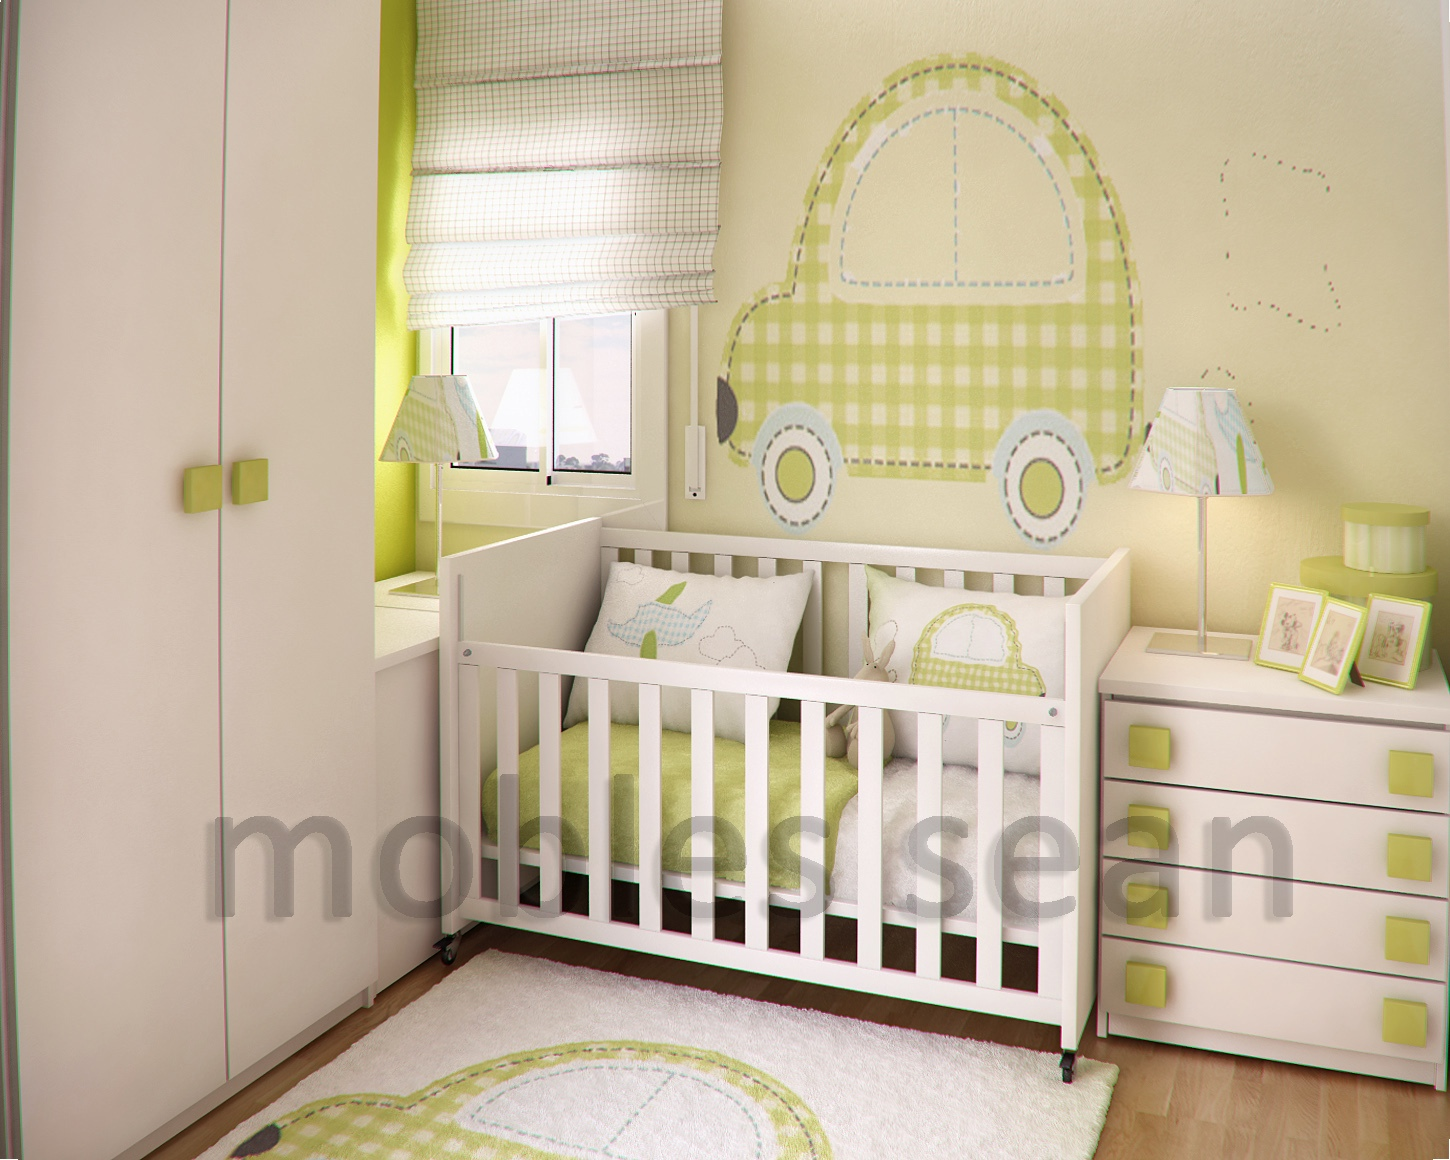 Space-Saving Designs for Small Kids Rooms